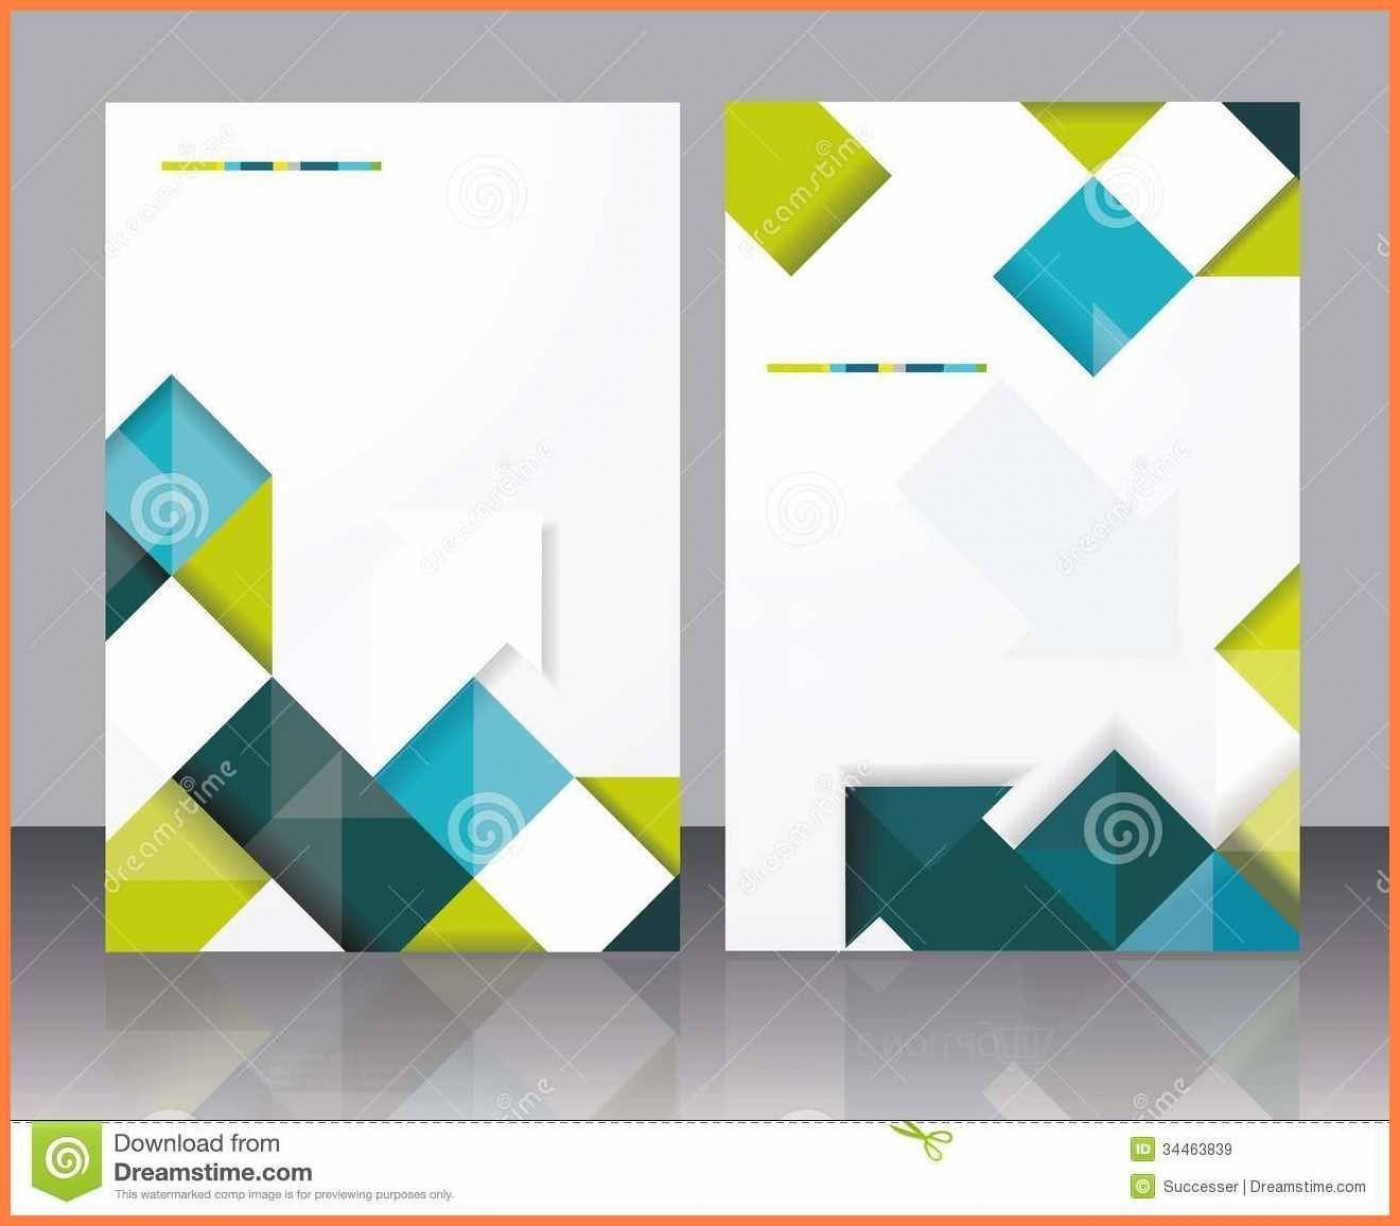 004 Marvelou Download Brochure Template For Word 2007 High Def 1400